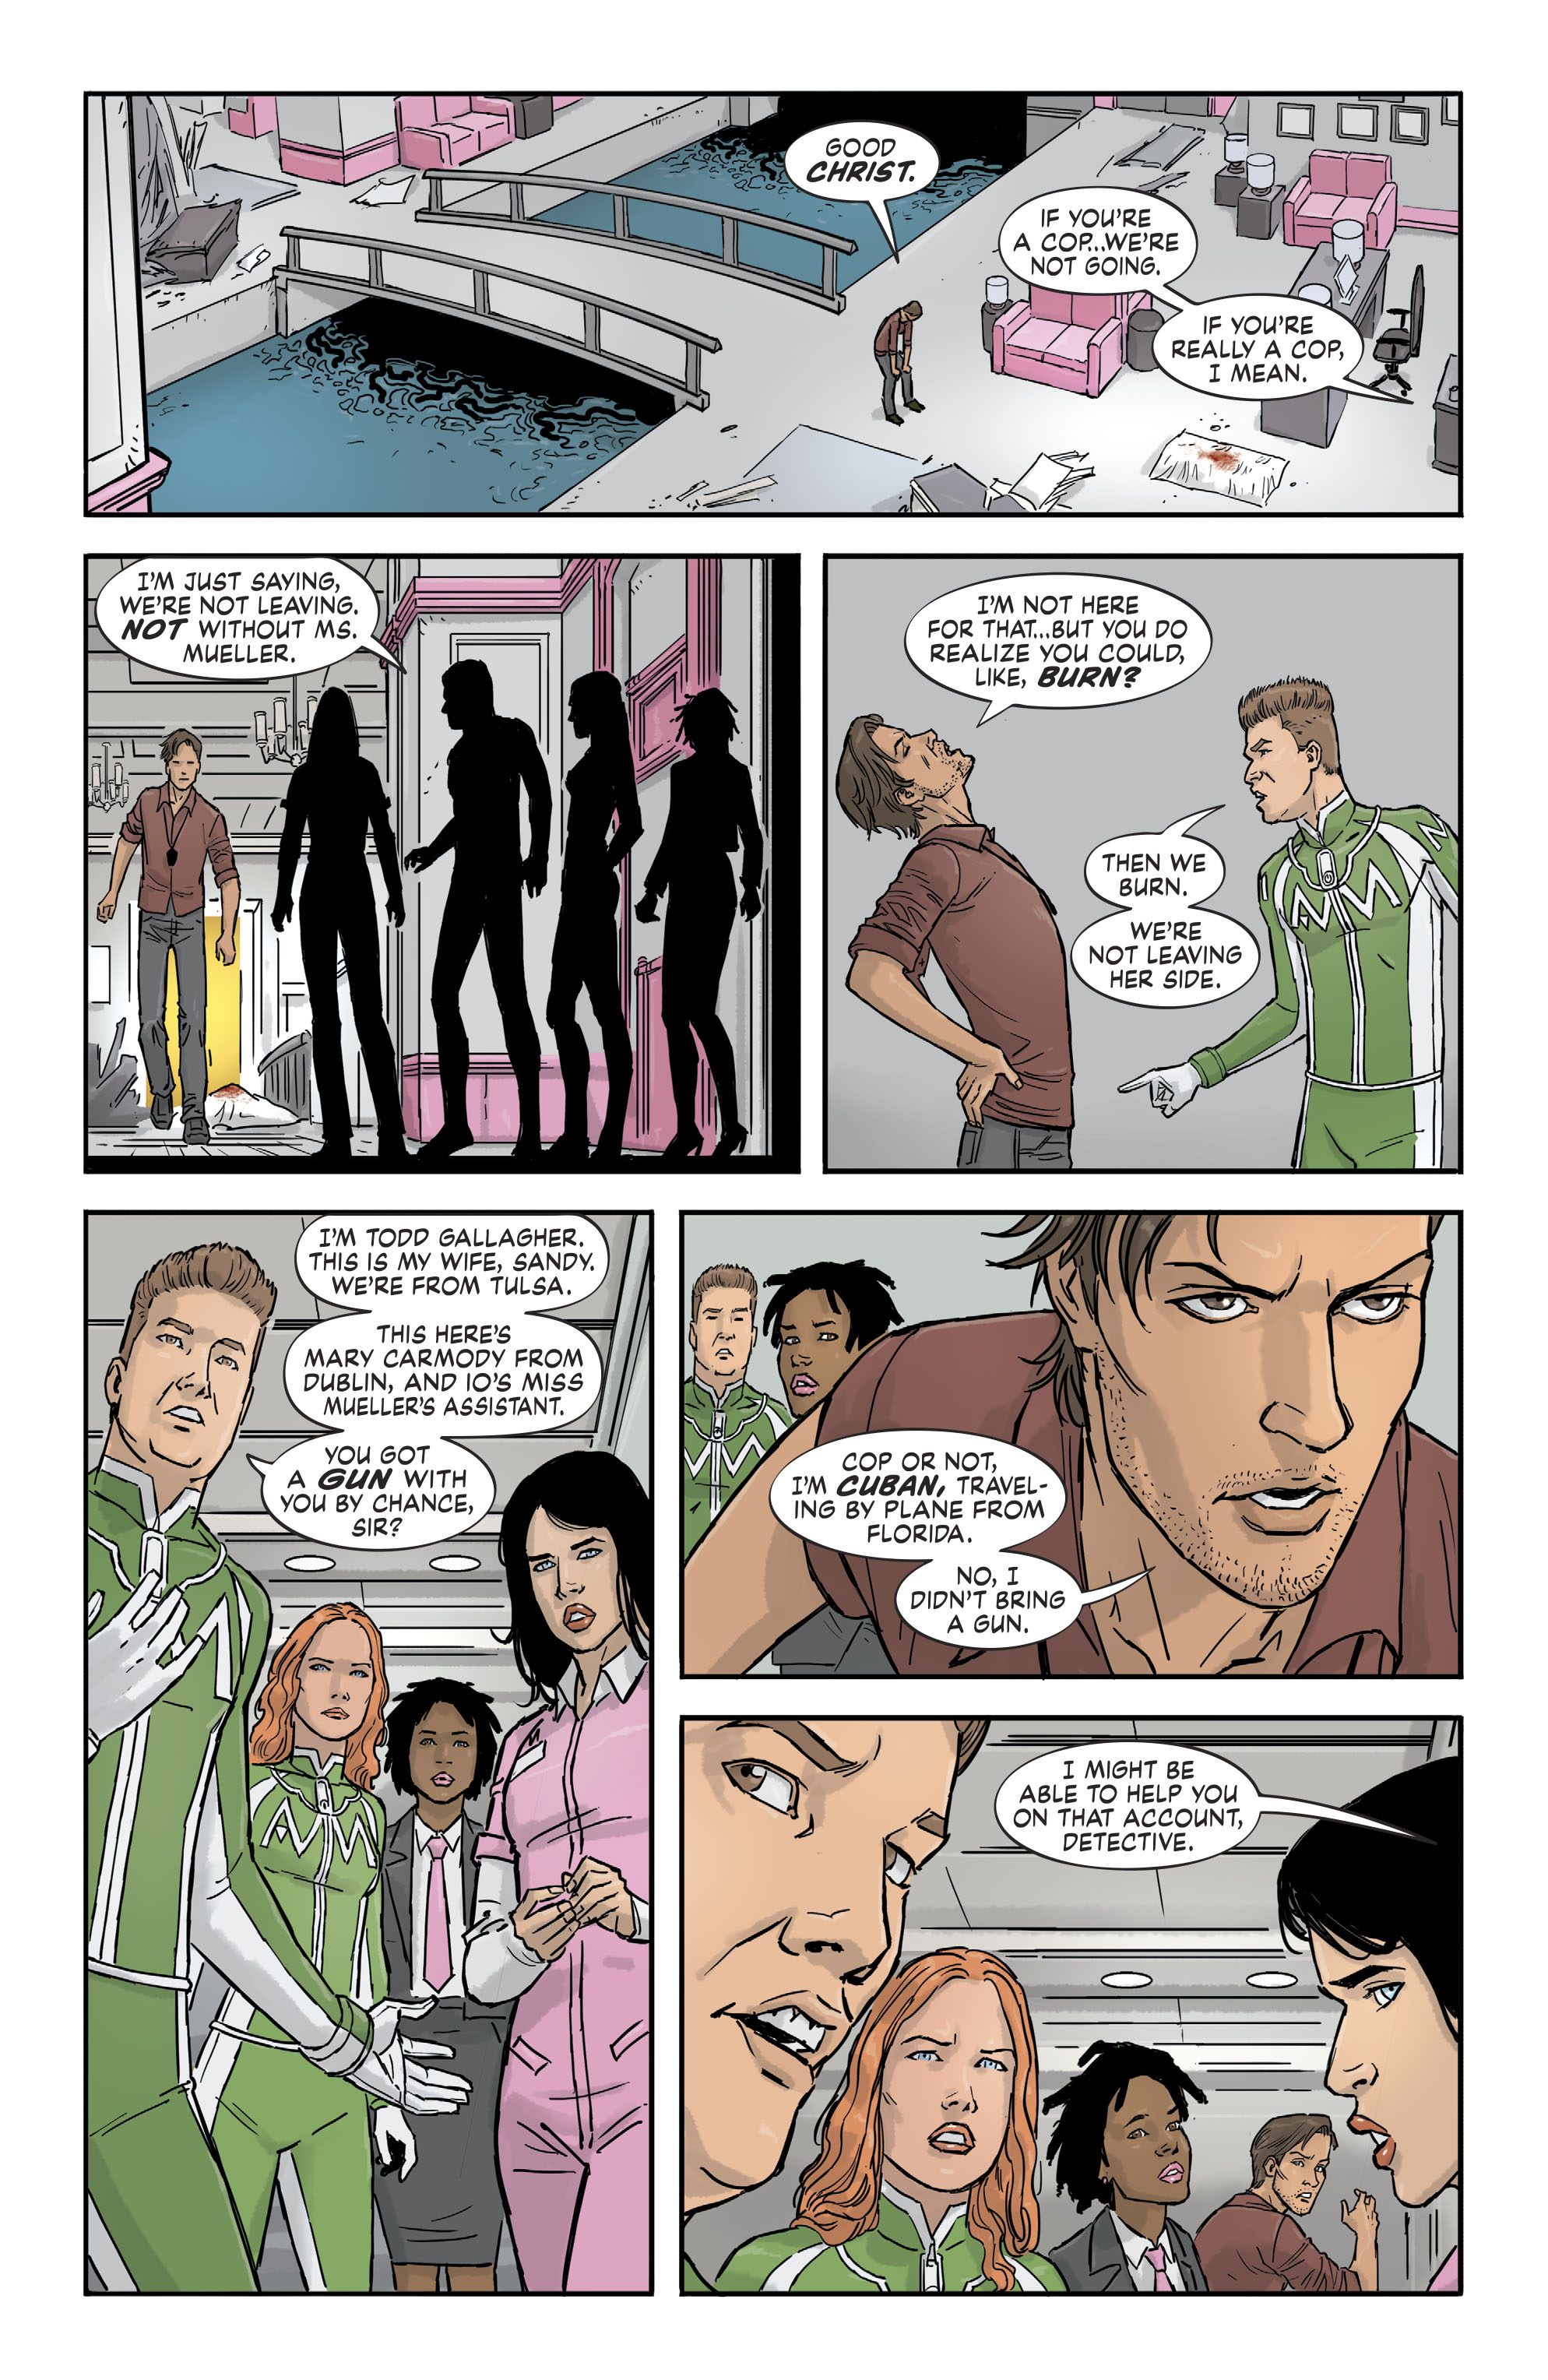 Salle blanche (2015-): Chapter 18 - Page Salle blanche (2015-)